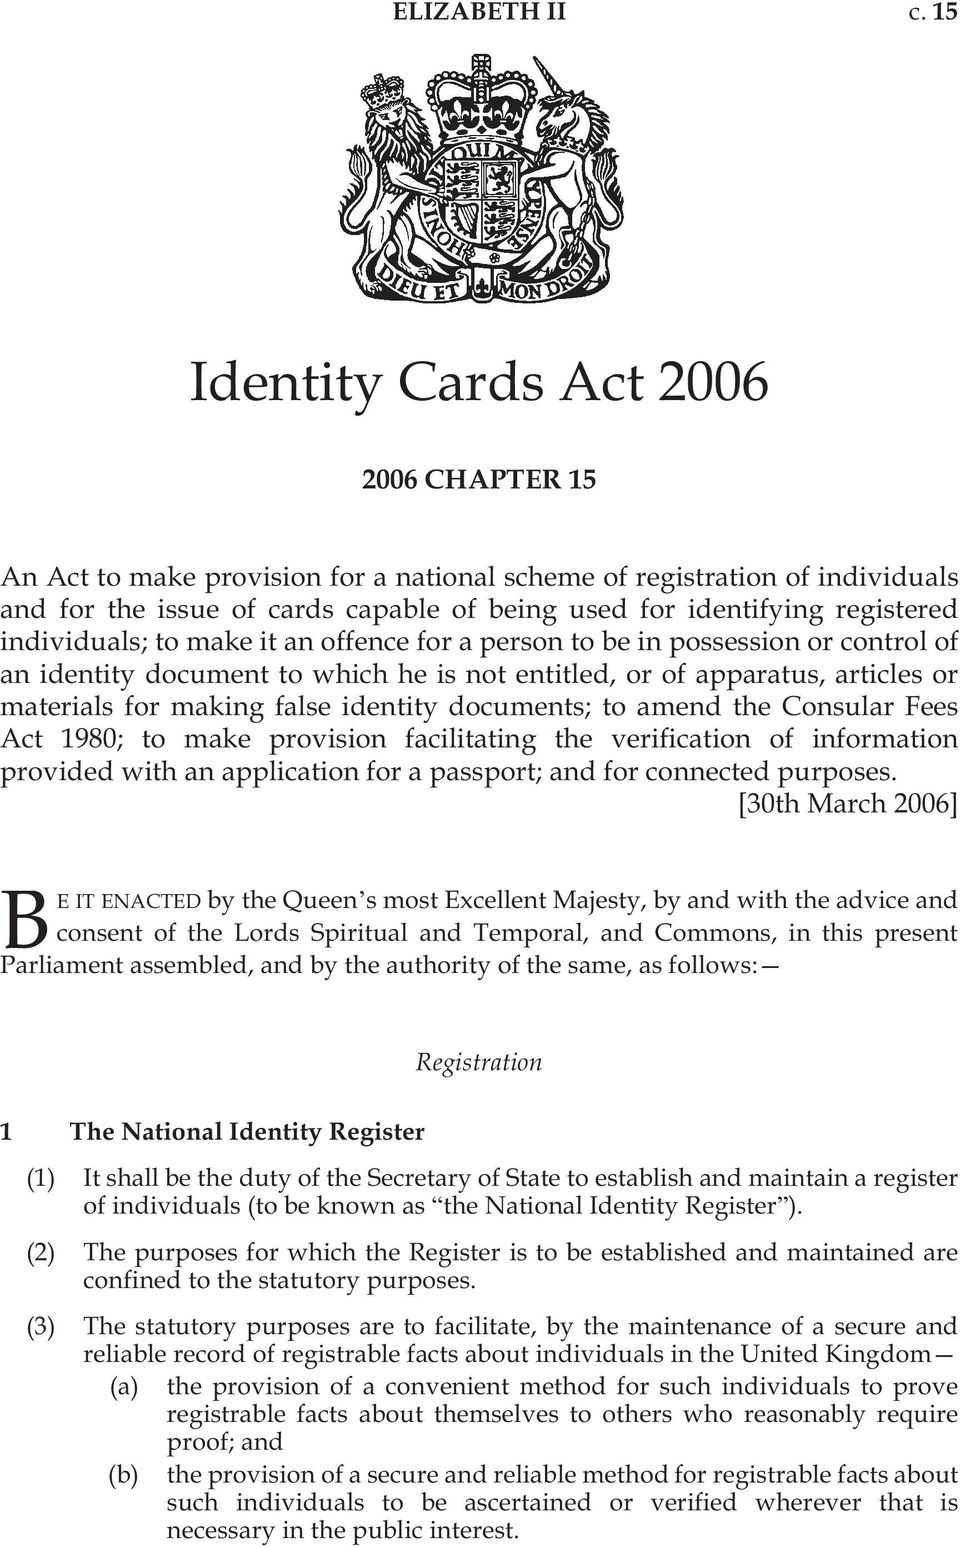 individuals; to make it an offence for a person to be in possession or control of an identity document to which he is not entitled, or of apparatus, articles or materials for making false identity